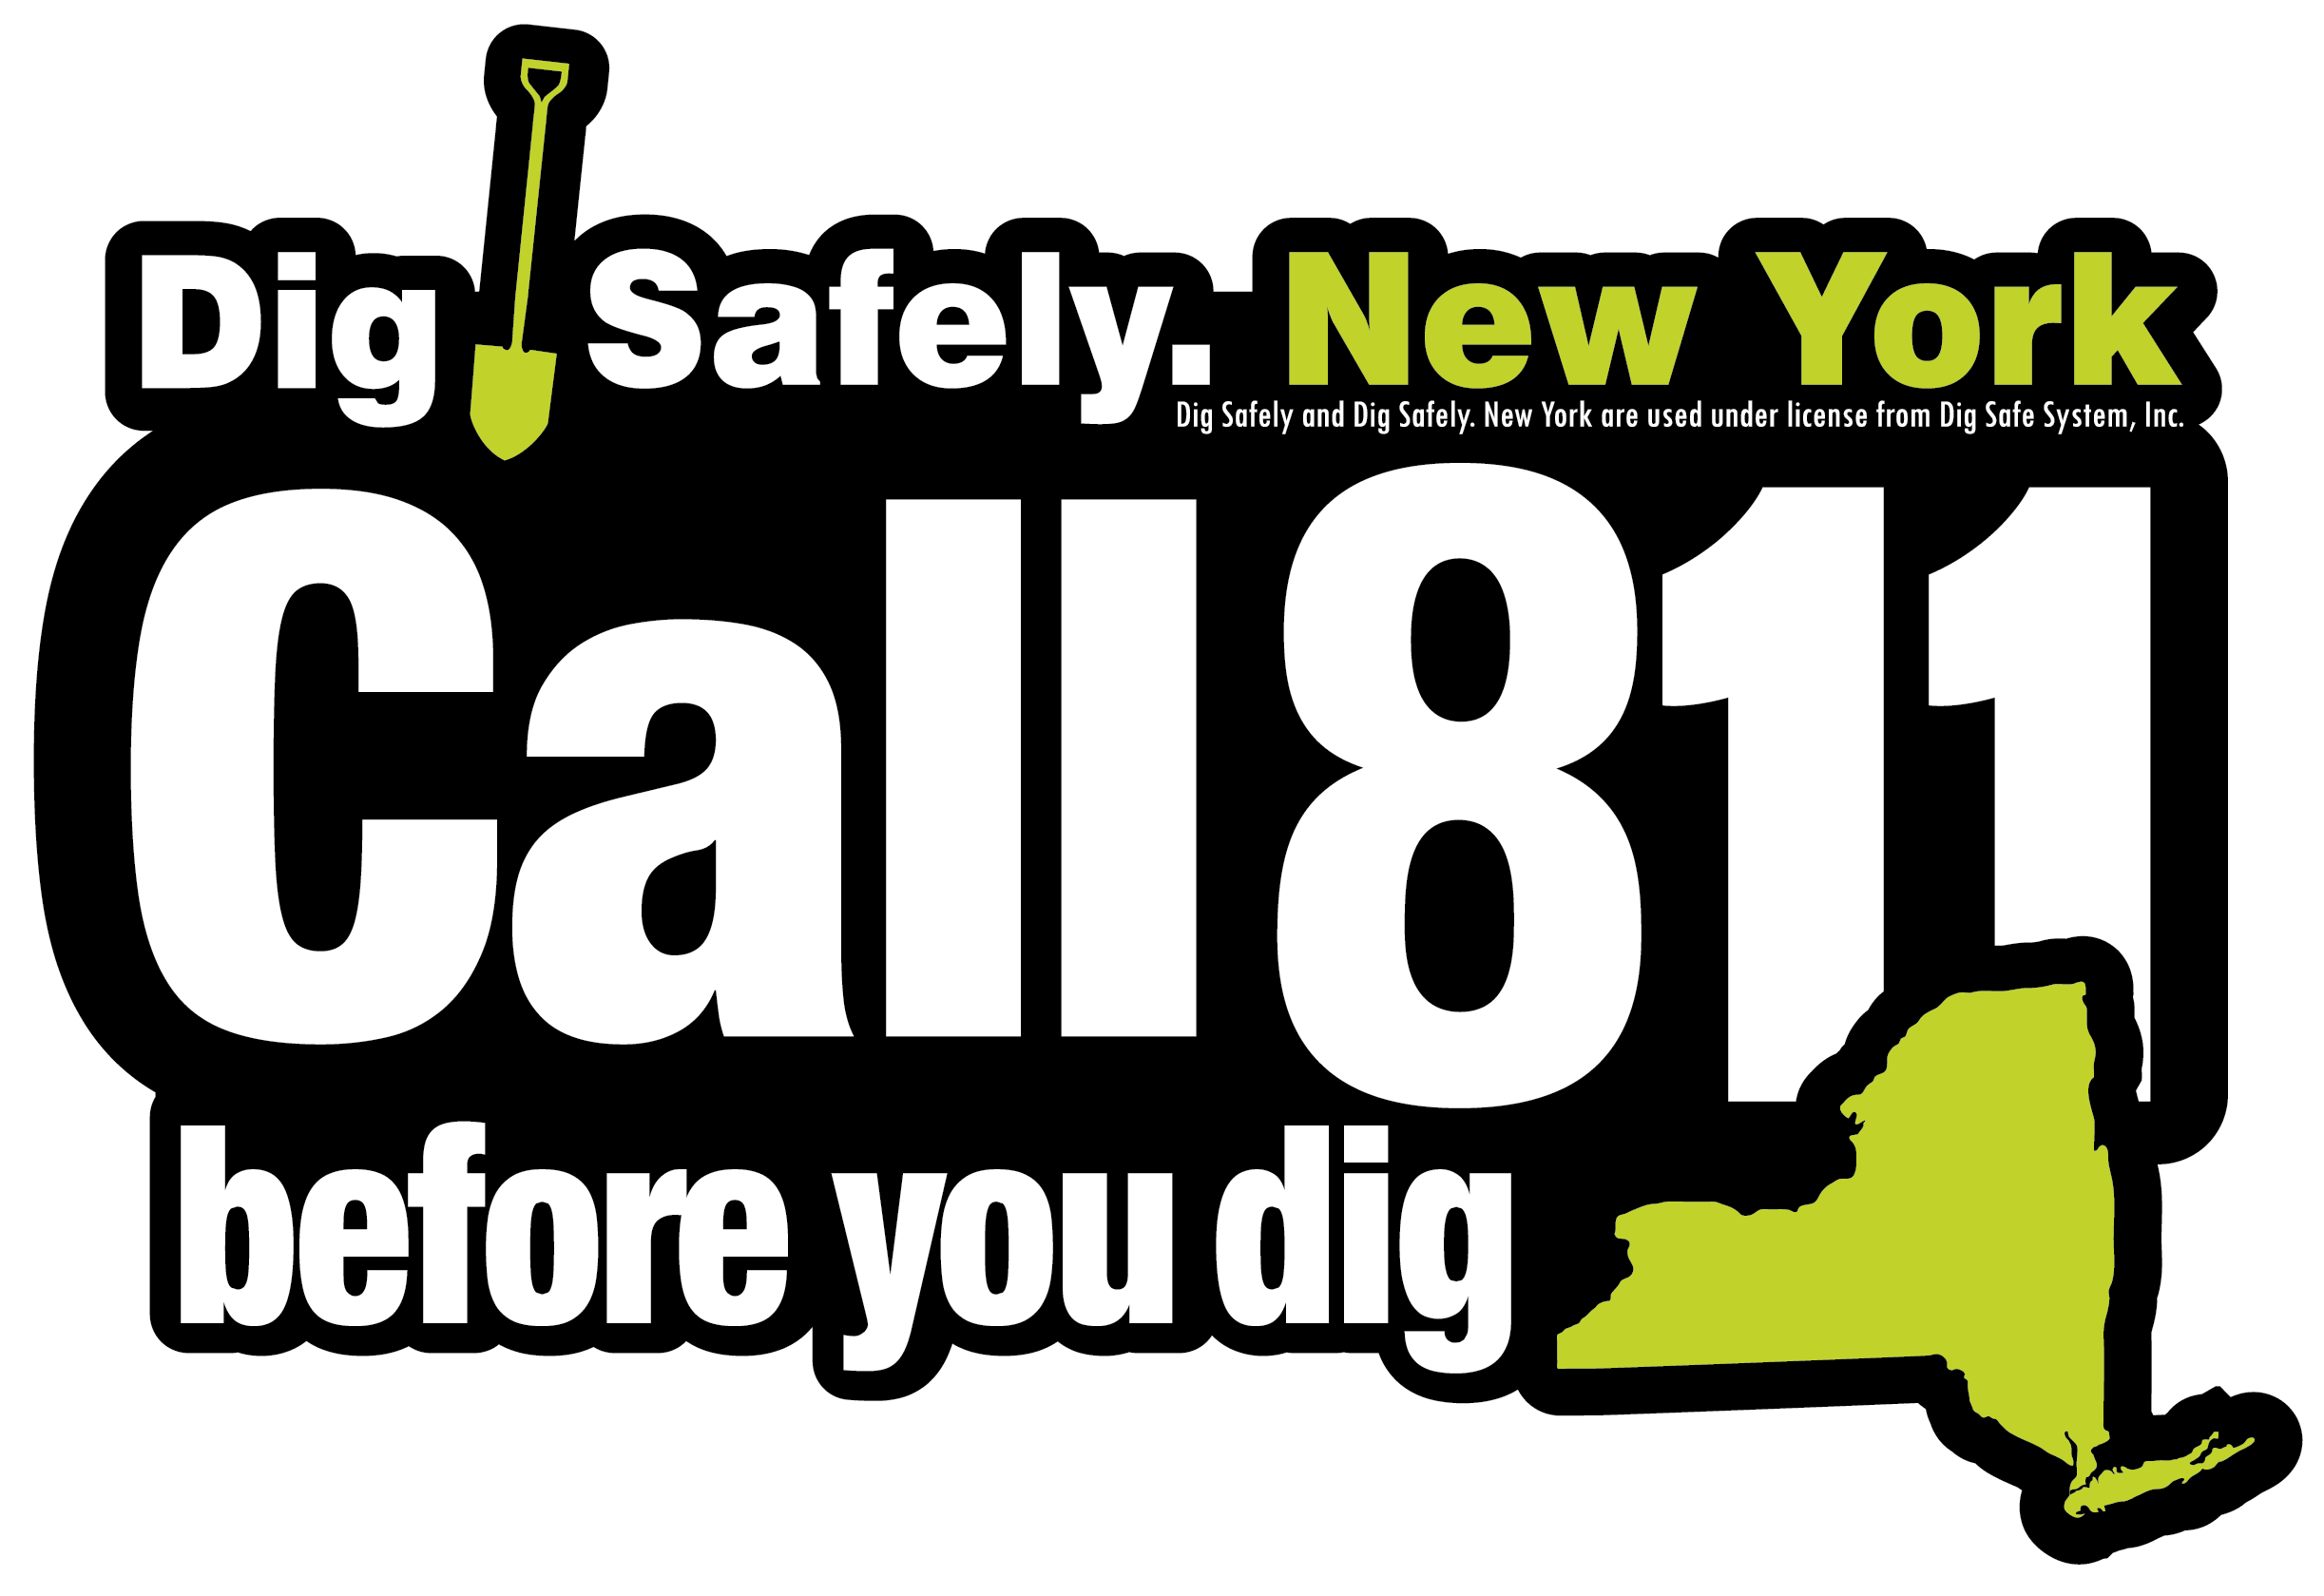 Dig Safely New York, Inc.